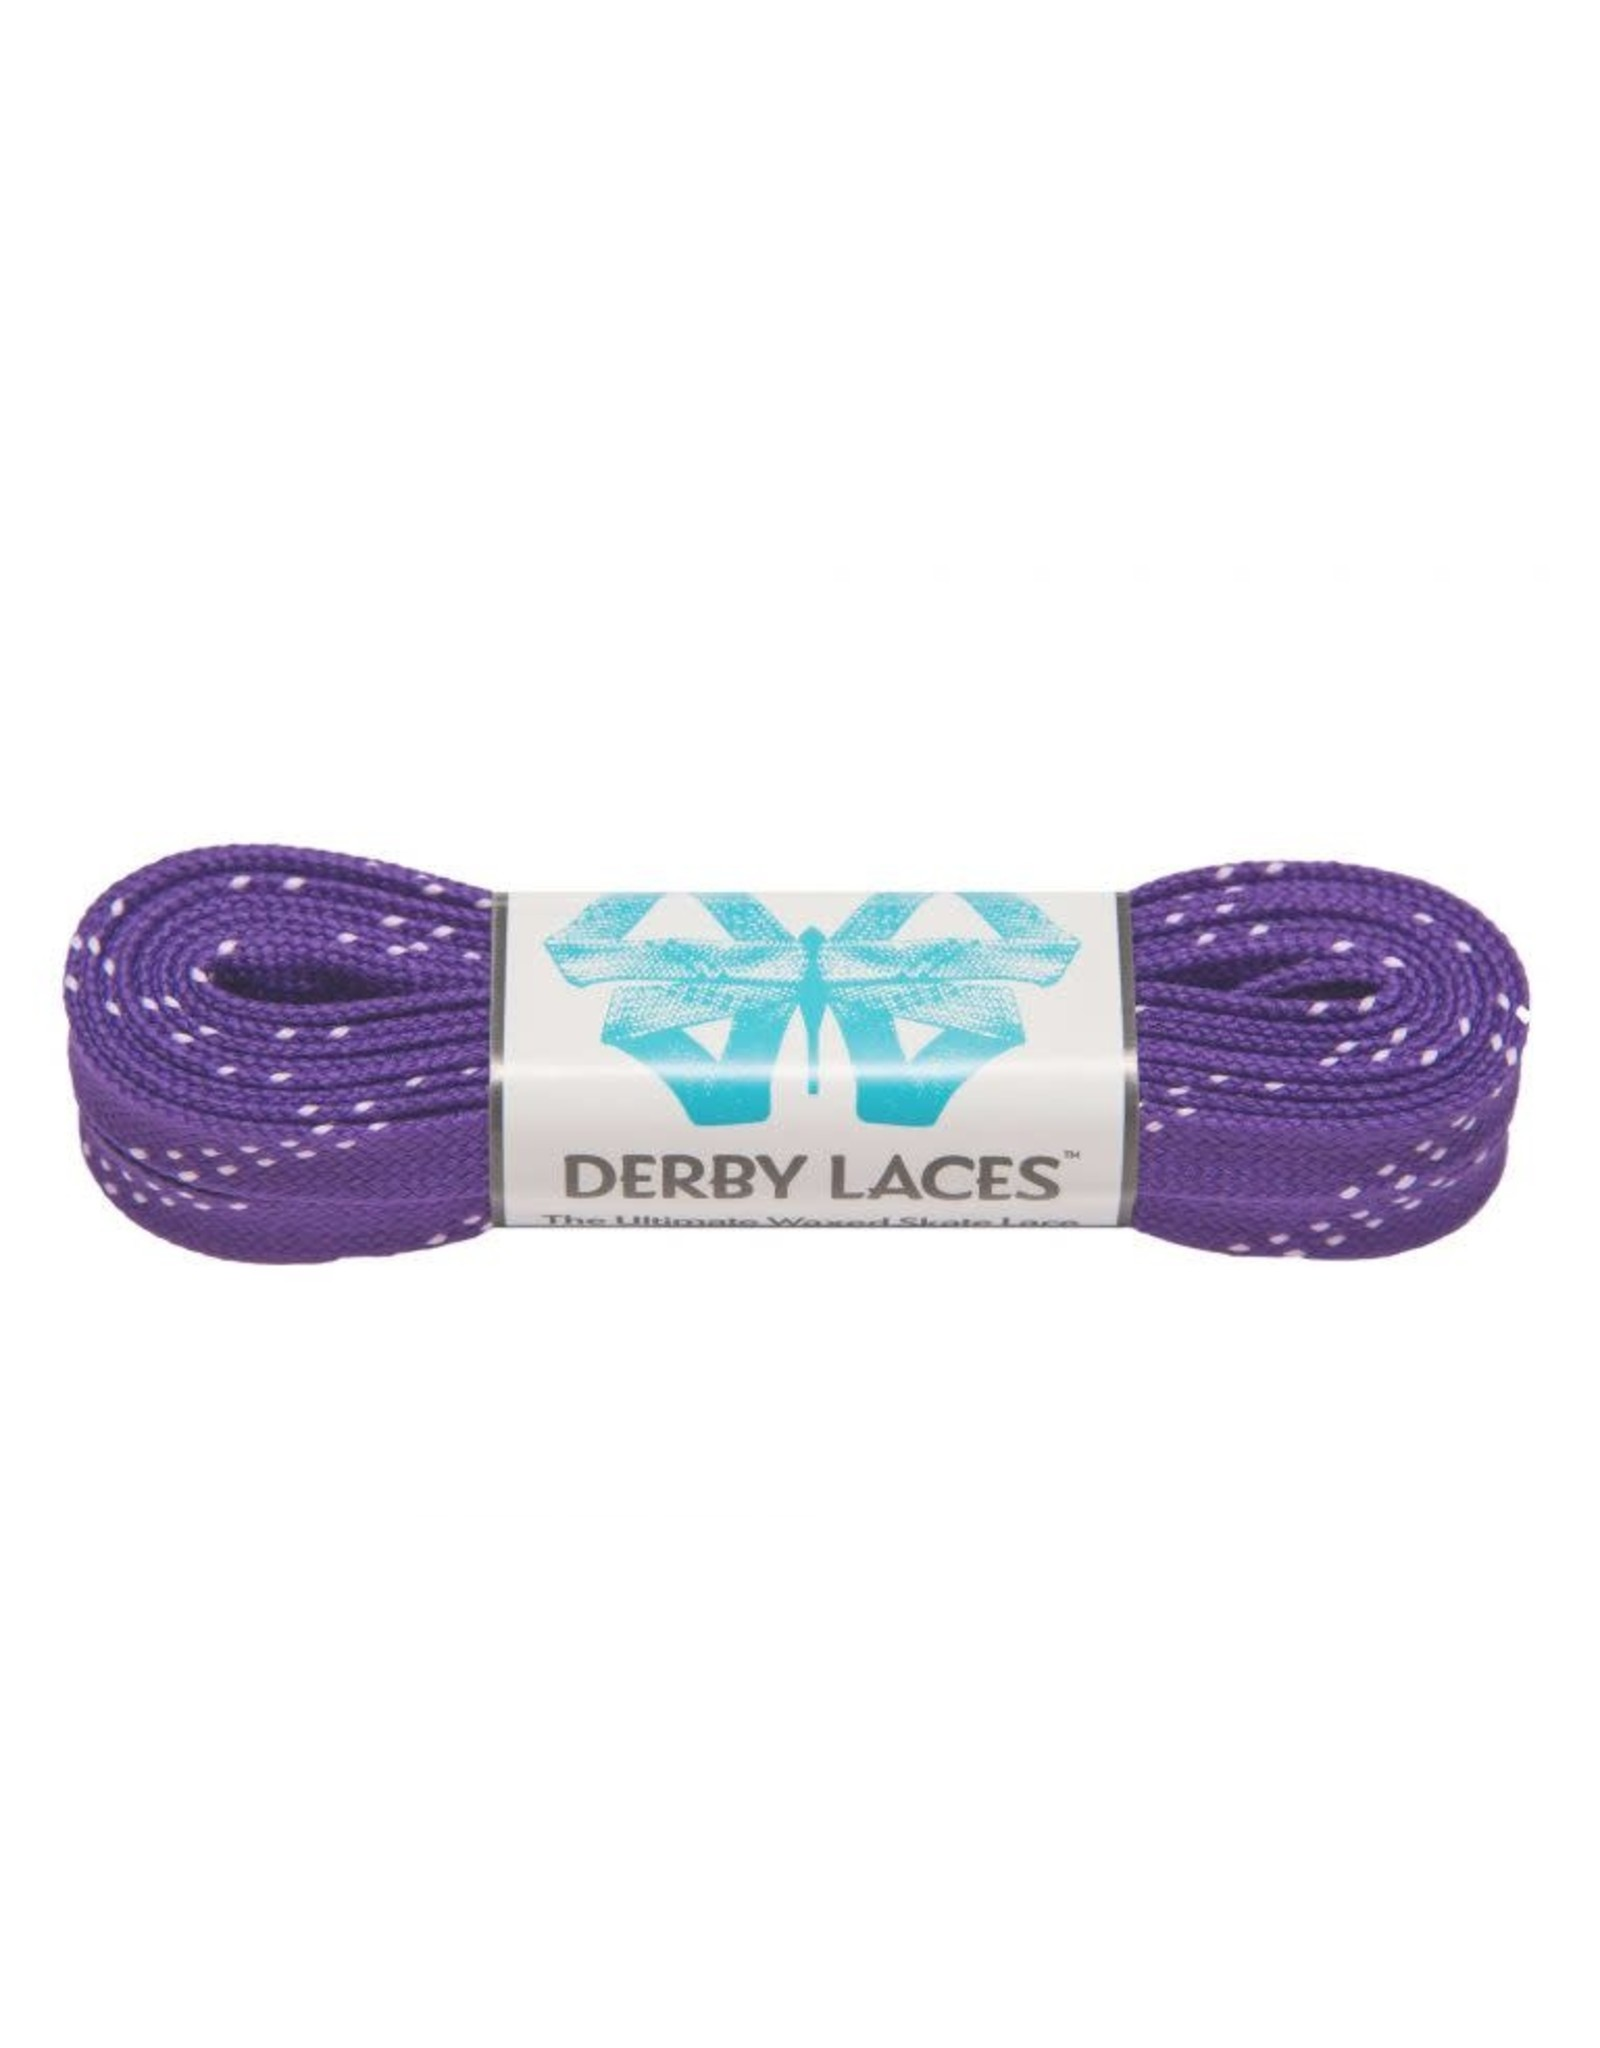 Derby Laces Waxed Derby Laces